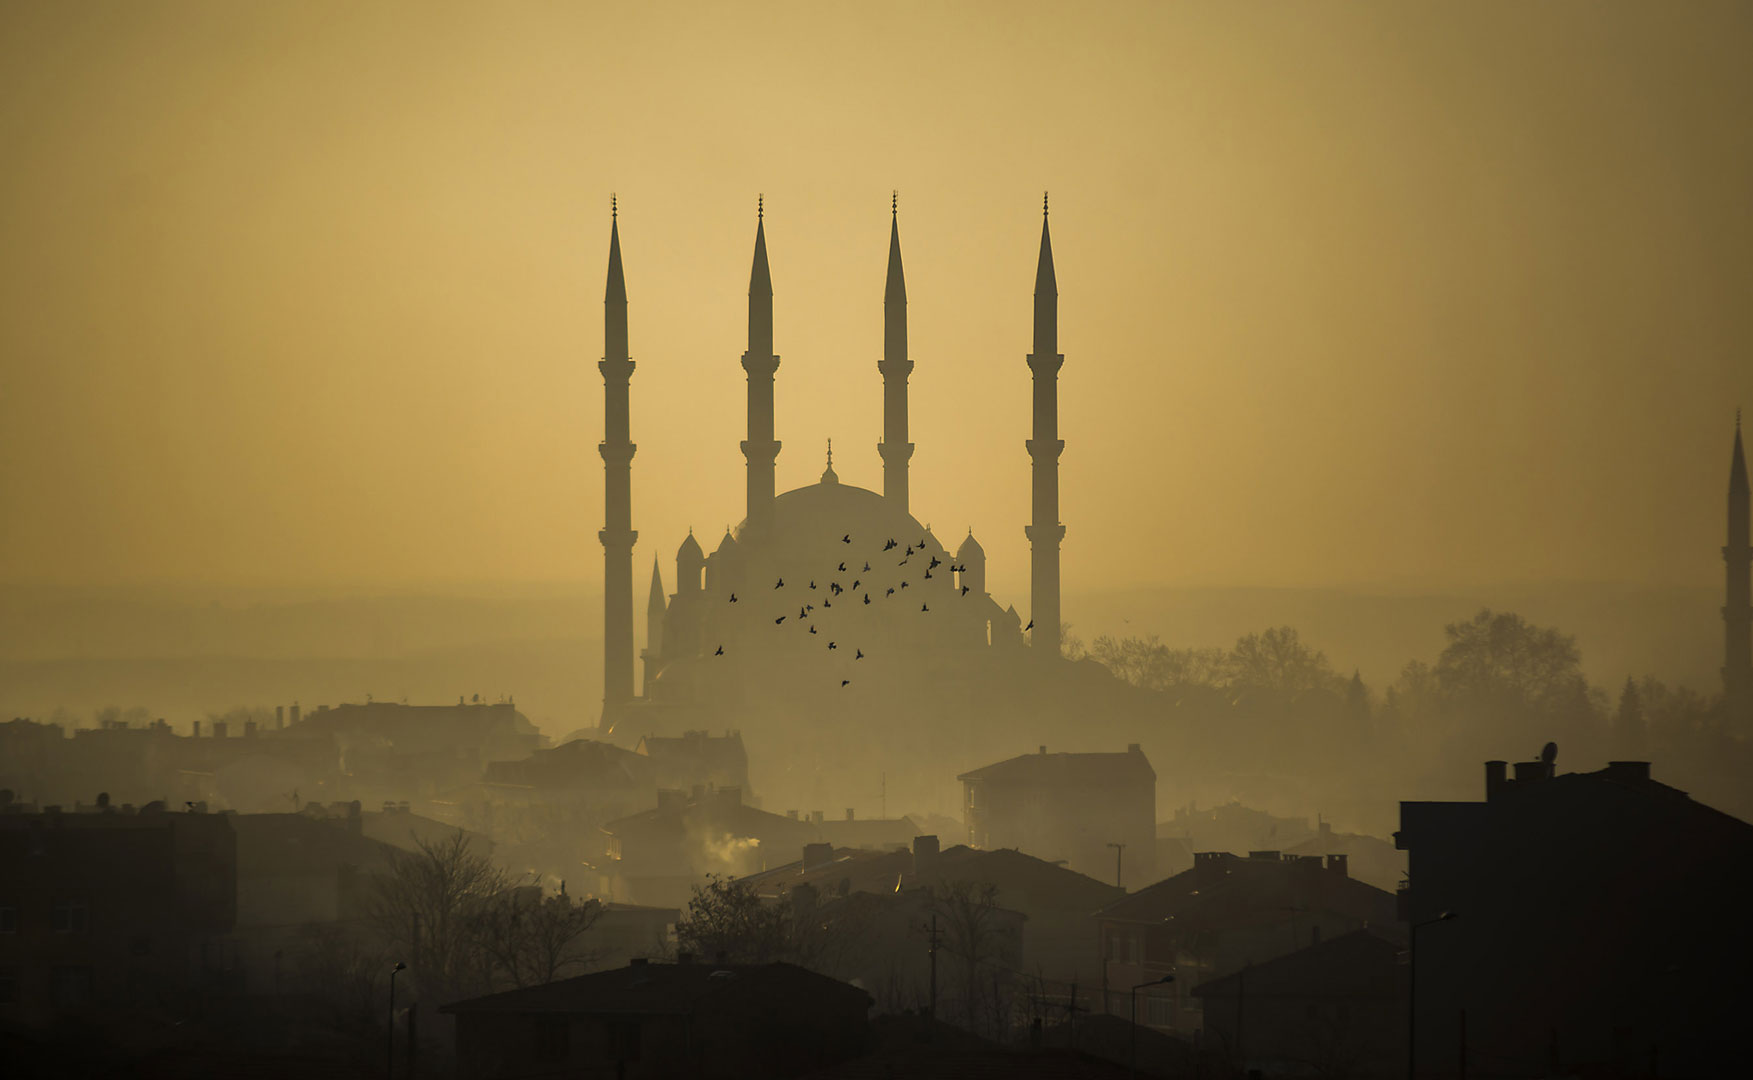 Impulse Responses - Selimiye Mosque